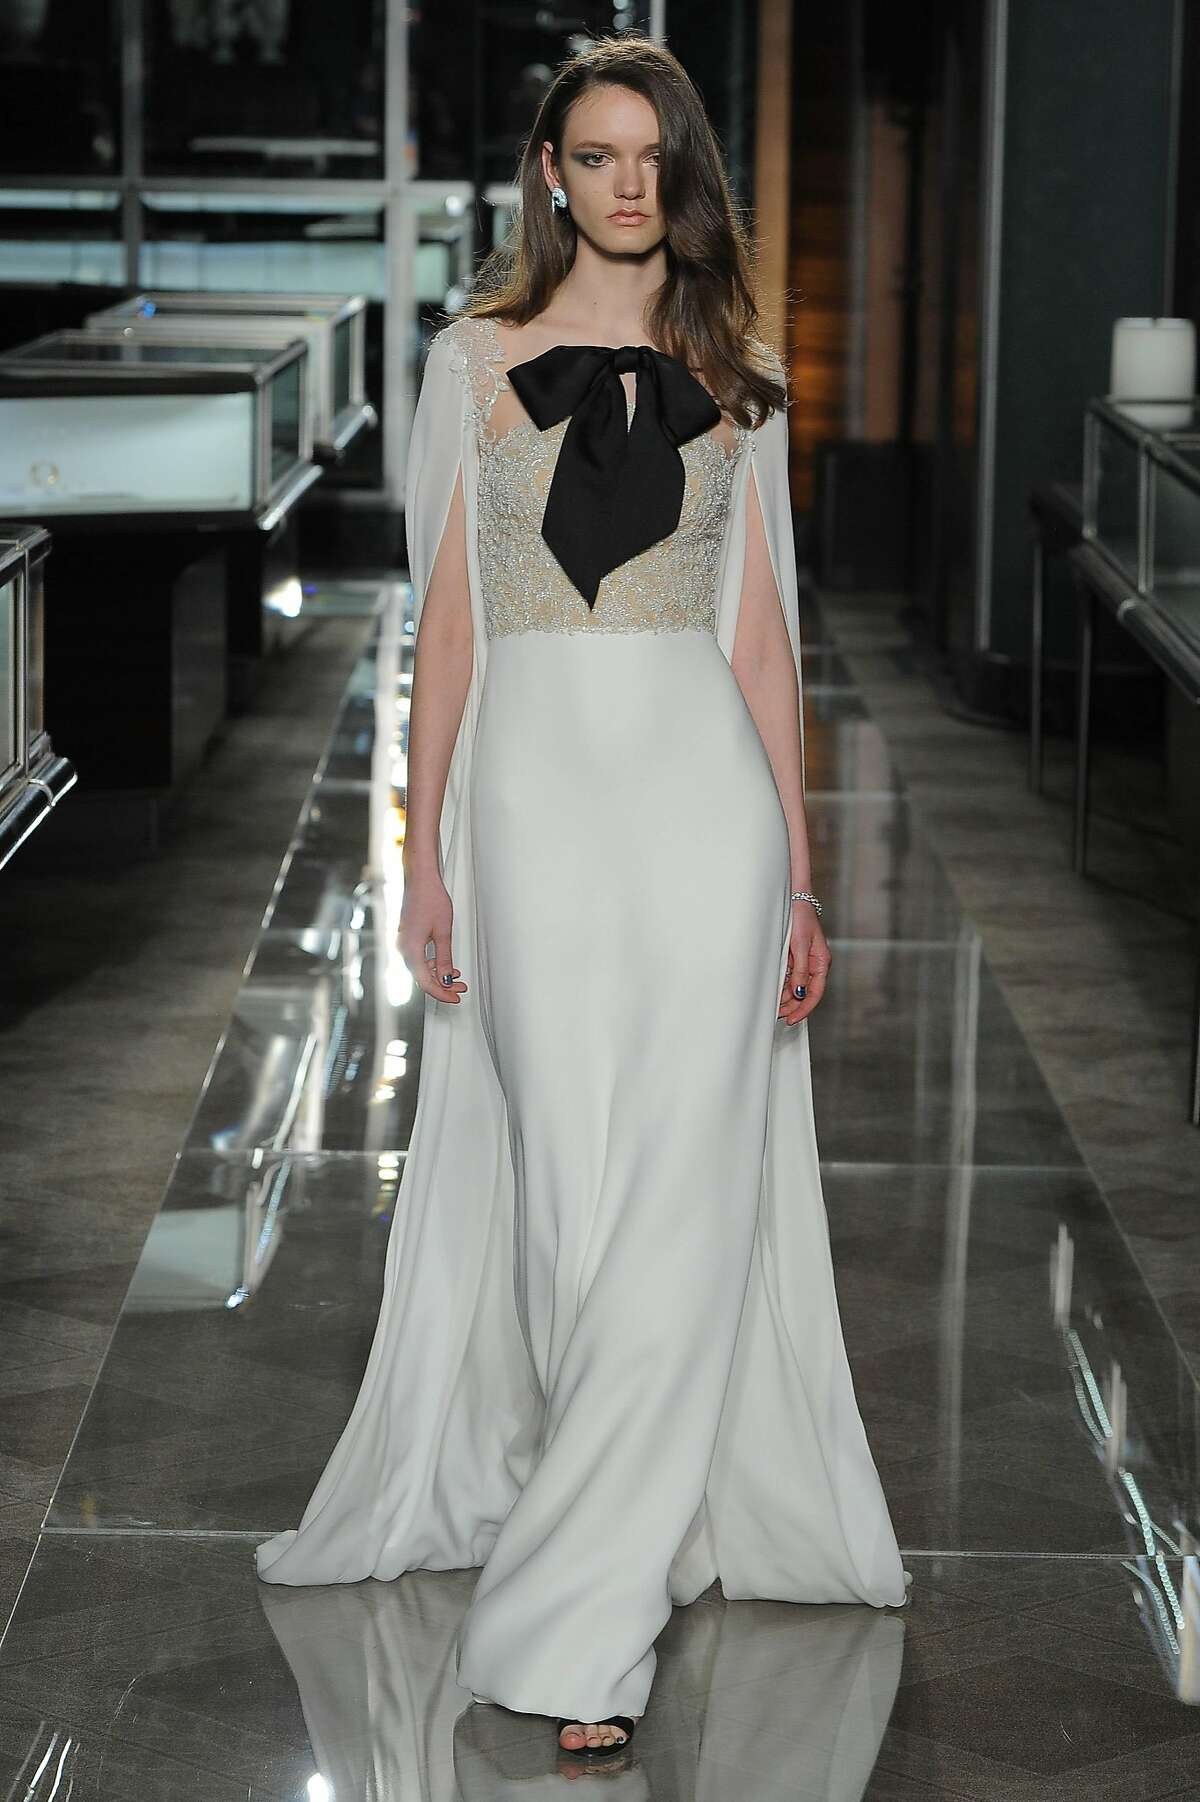 Bridal looks with black accents by Reem Acra.